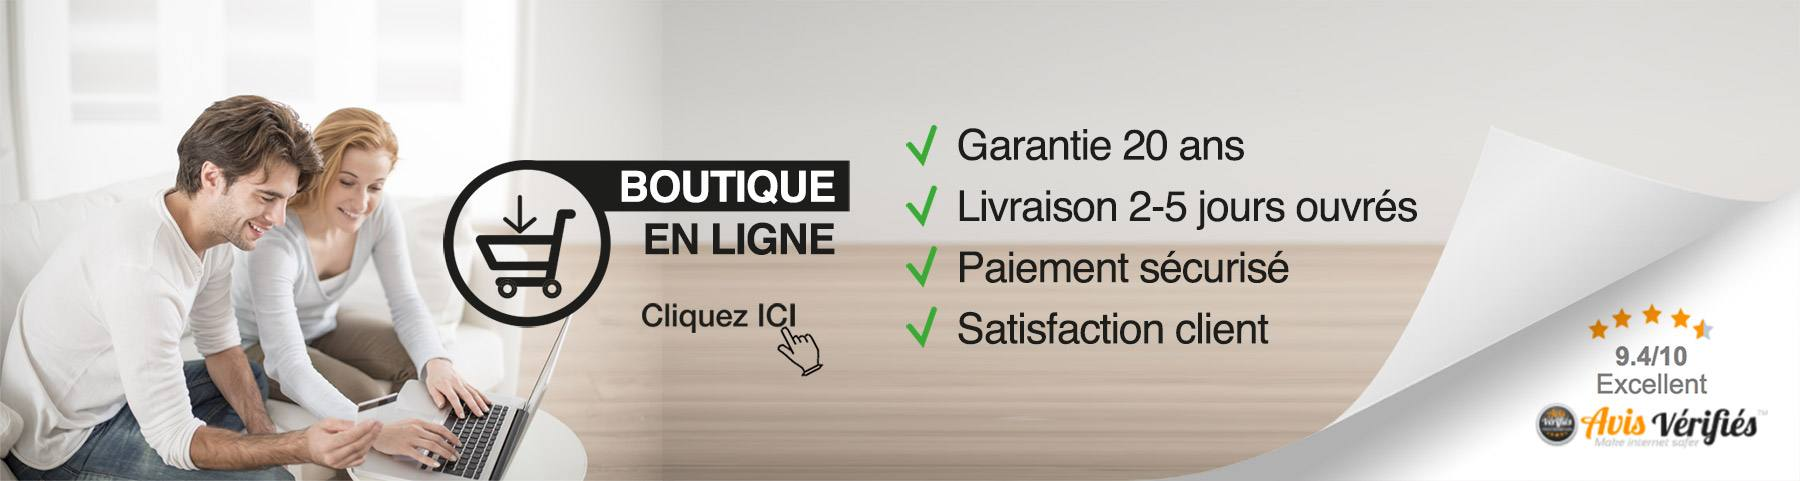 La boutique du gabion